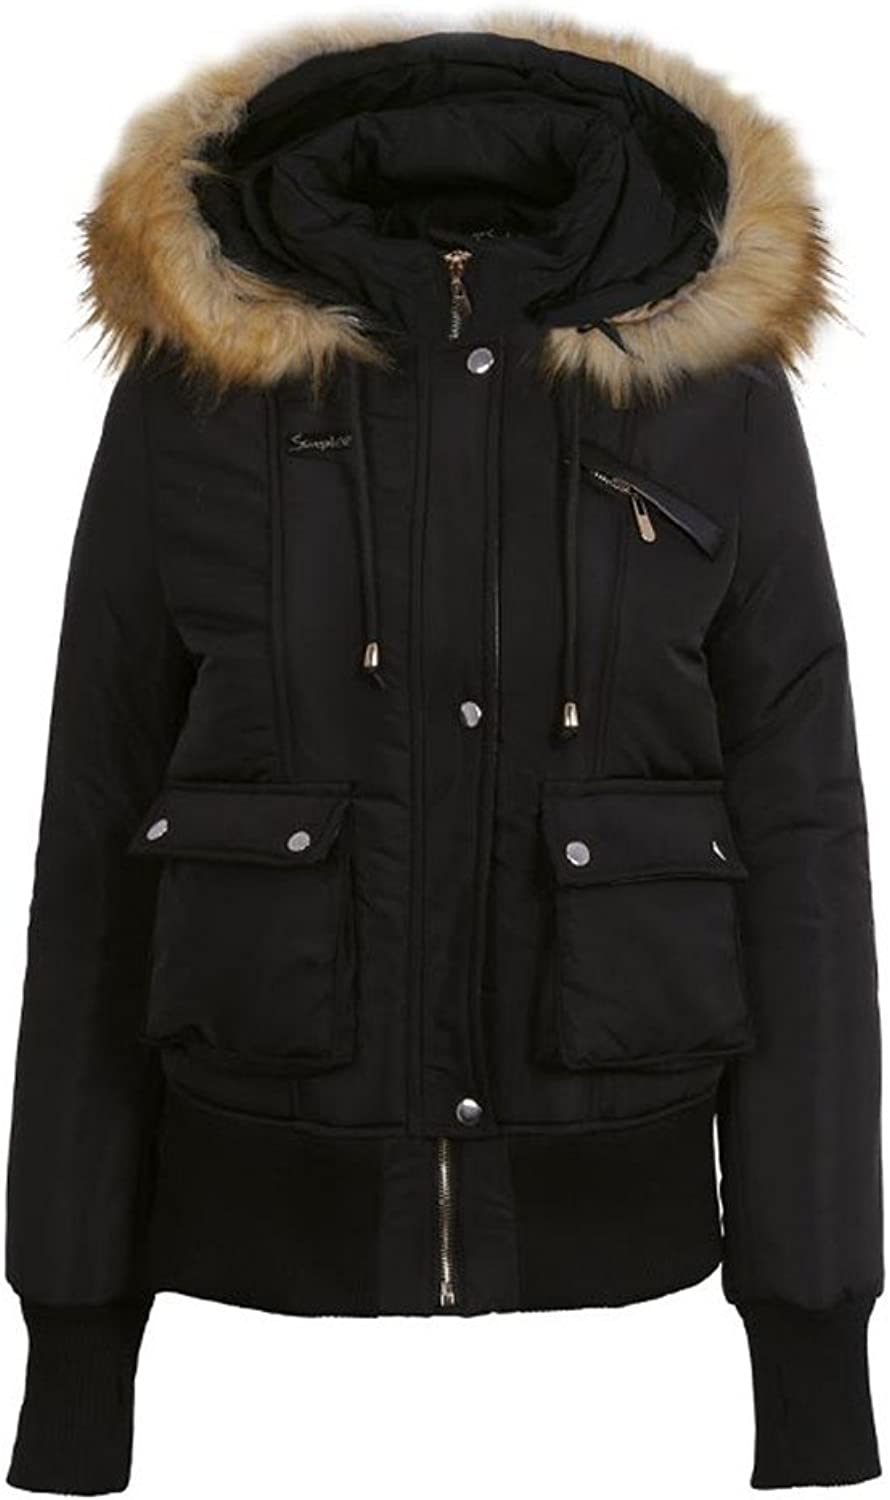 Winter Women Coat Fur Warm Pocket Zipper Overcoat Thick Jacket Coat